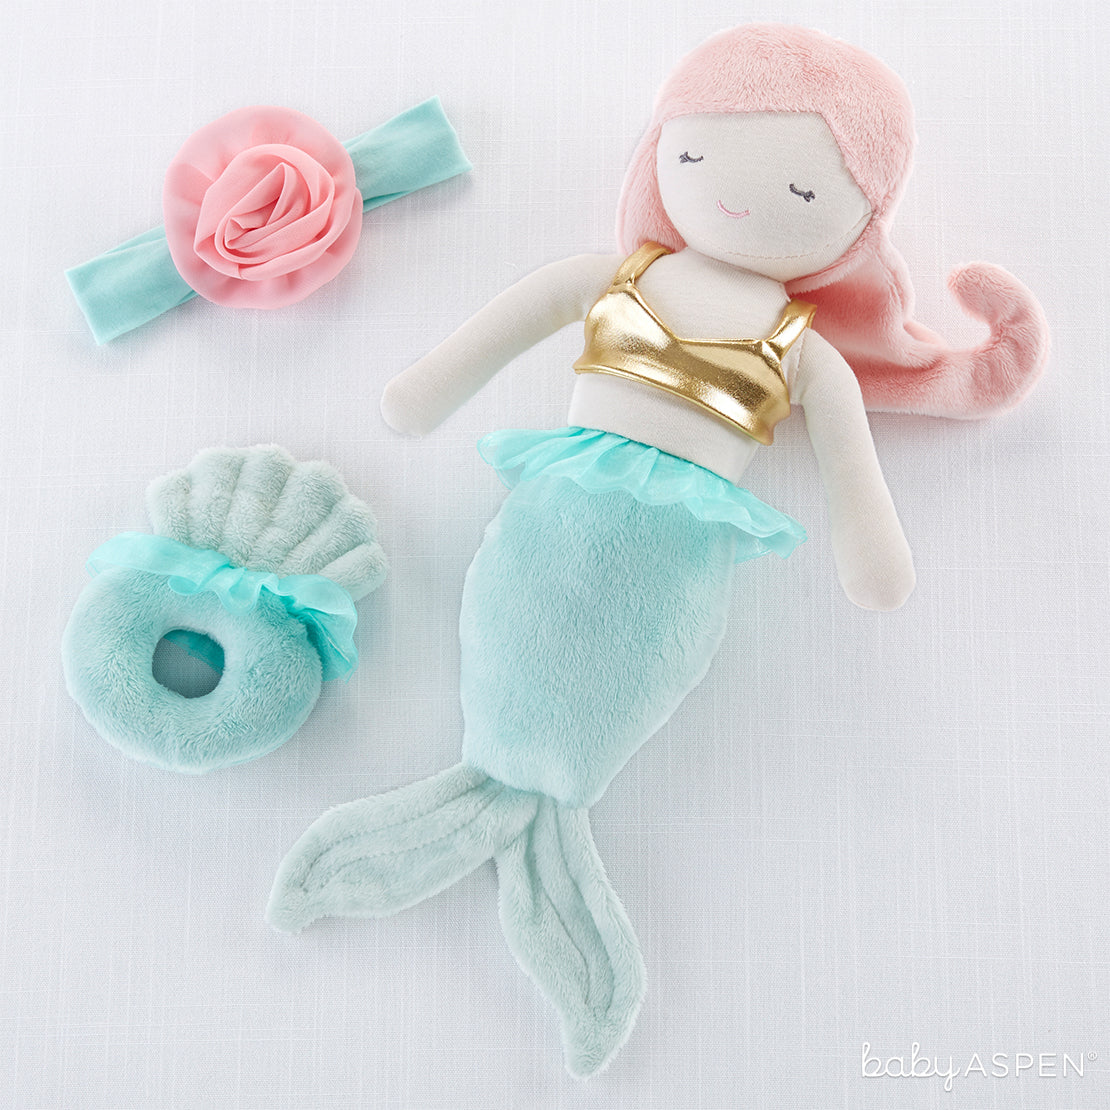 Mermaid Plush Plus Headband and Lovie | Holiday Gift Guide: Top 10 Baby Picks for 2018 | Baby Aspen